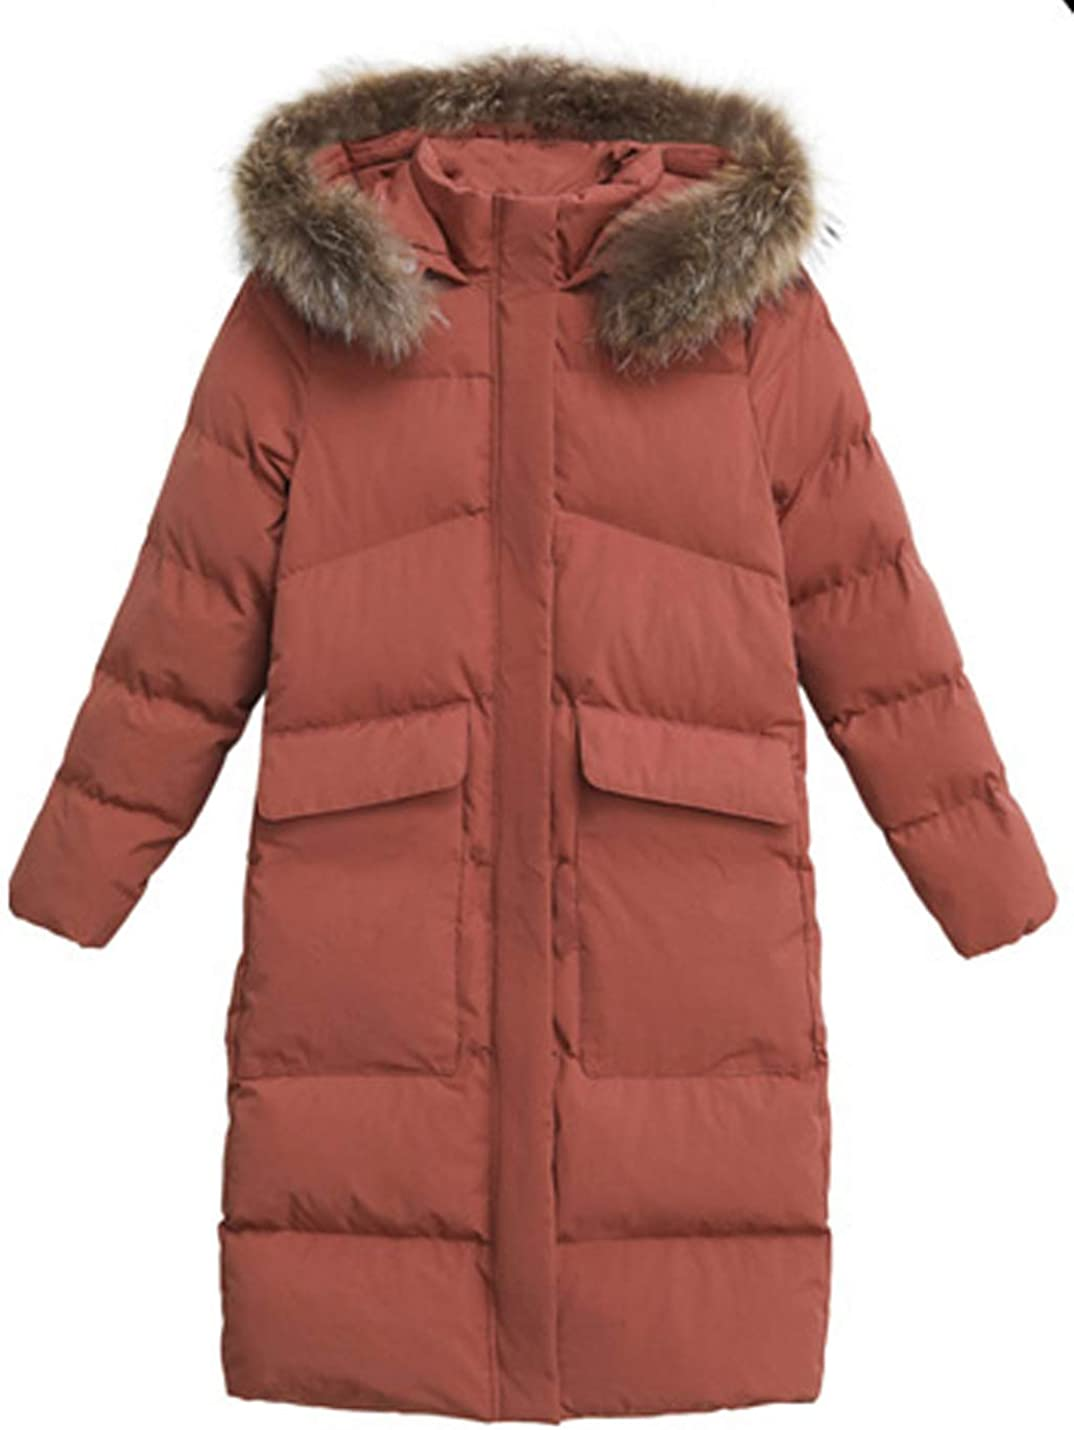 Uaneo Women's Mid Long Slim Thicken Puffer Quilted Fur Collar Hooded Winter Coat(Camel-XS)